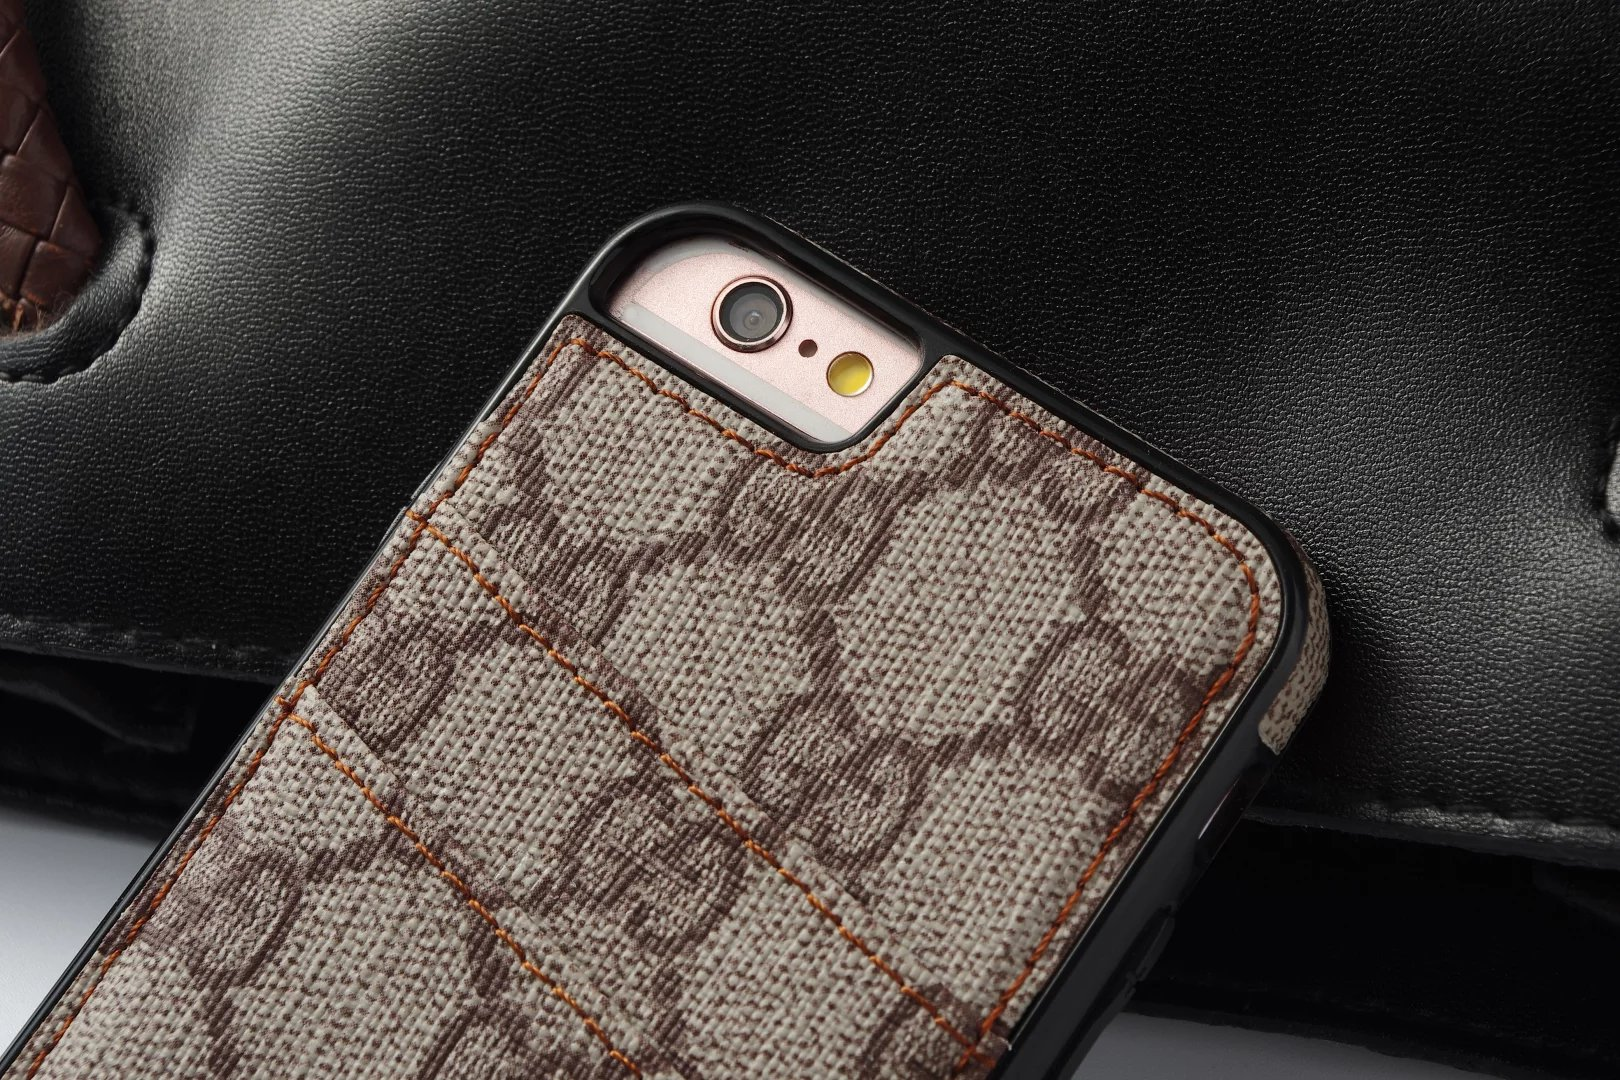 iphone 8 cases for sale customize phone cases for iphone 8 Louis Vuitton iphone 8 case iphone 8 covers online case 8 case for iphone iphone 8 cases cool designs whats a mophie iphone cover brands